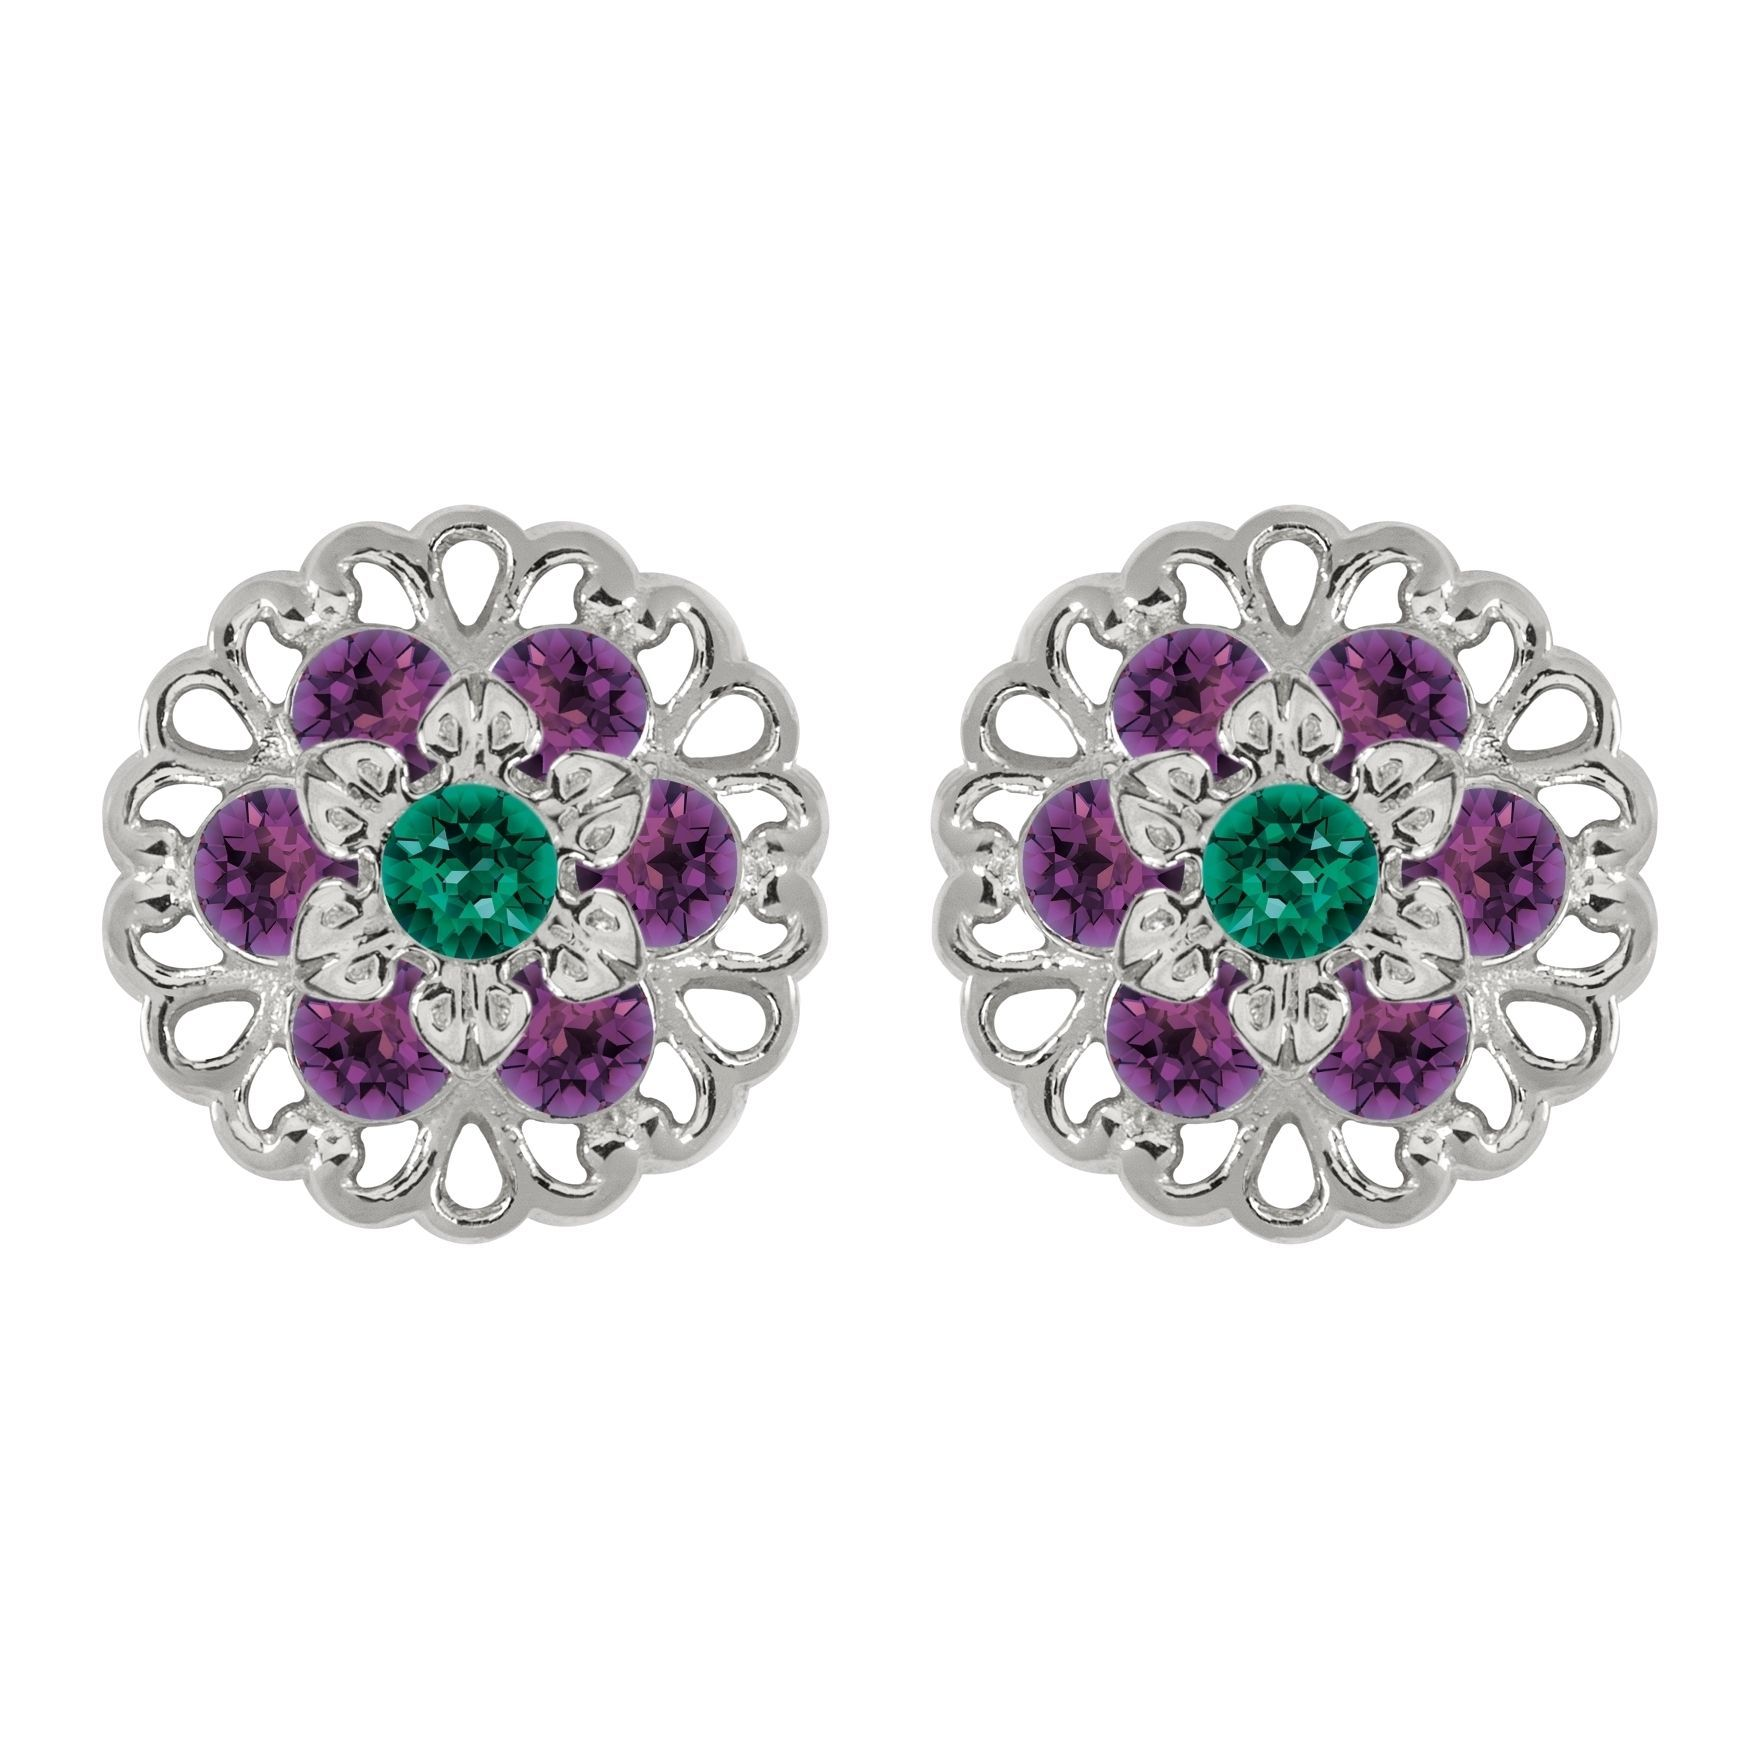 Lucia Costin Sterling Silver Green/ Violet Earrings